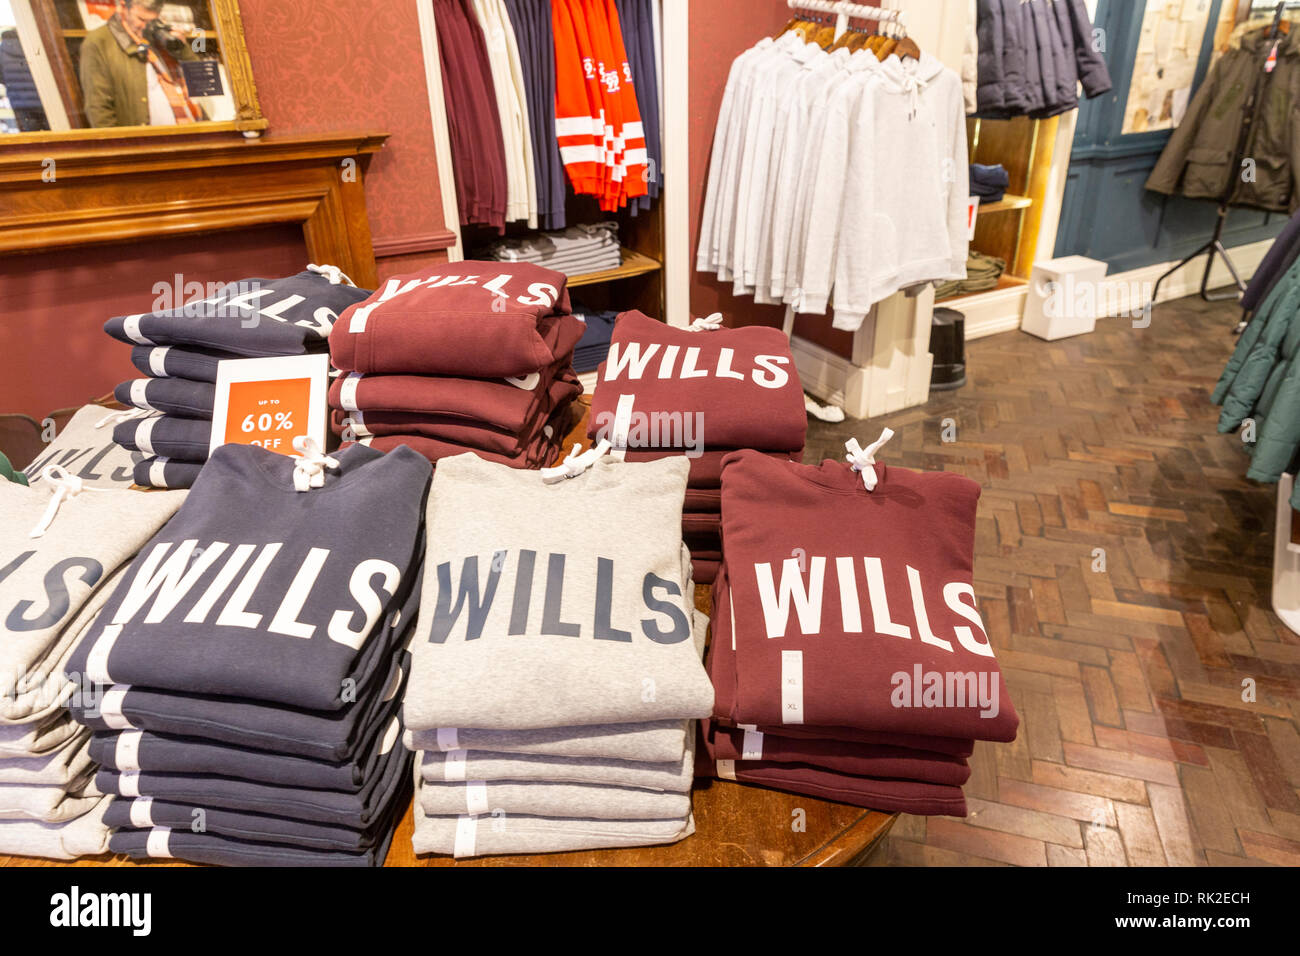 Interior of a Jack Wills clothing store in Manchester city centre,England - Stock Image